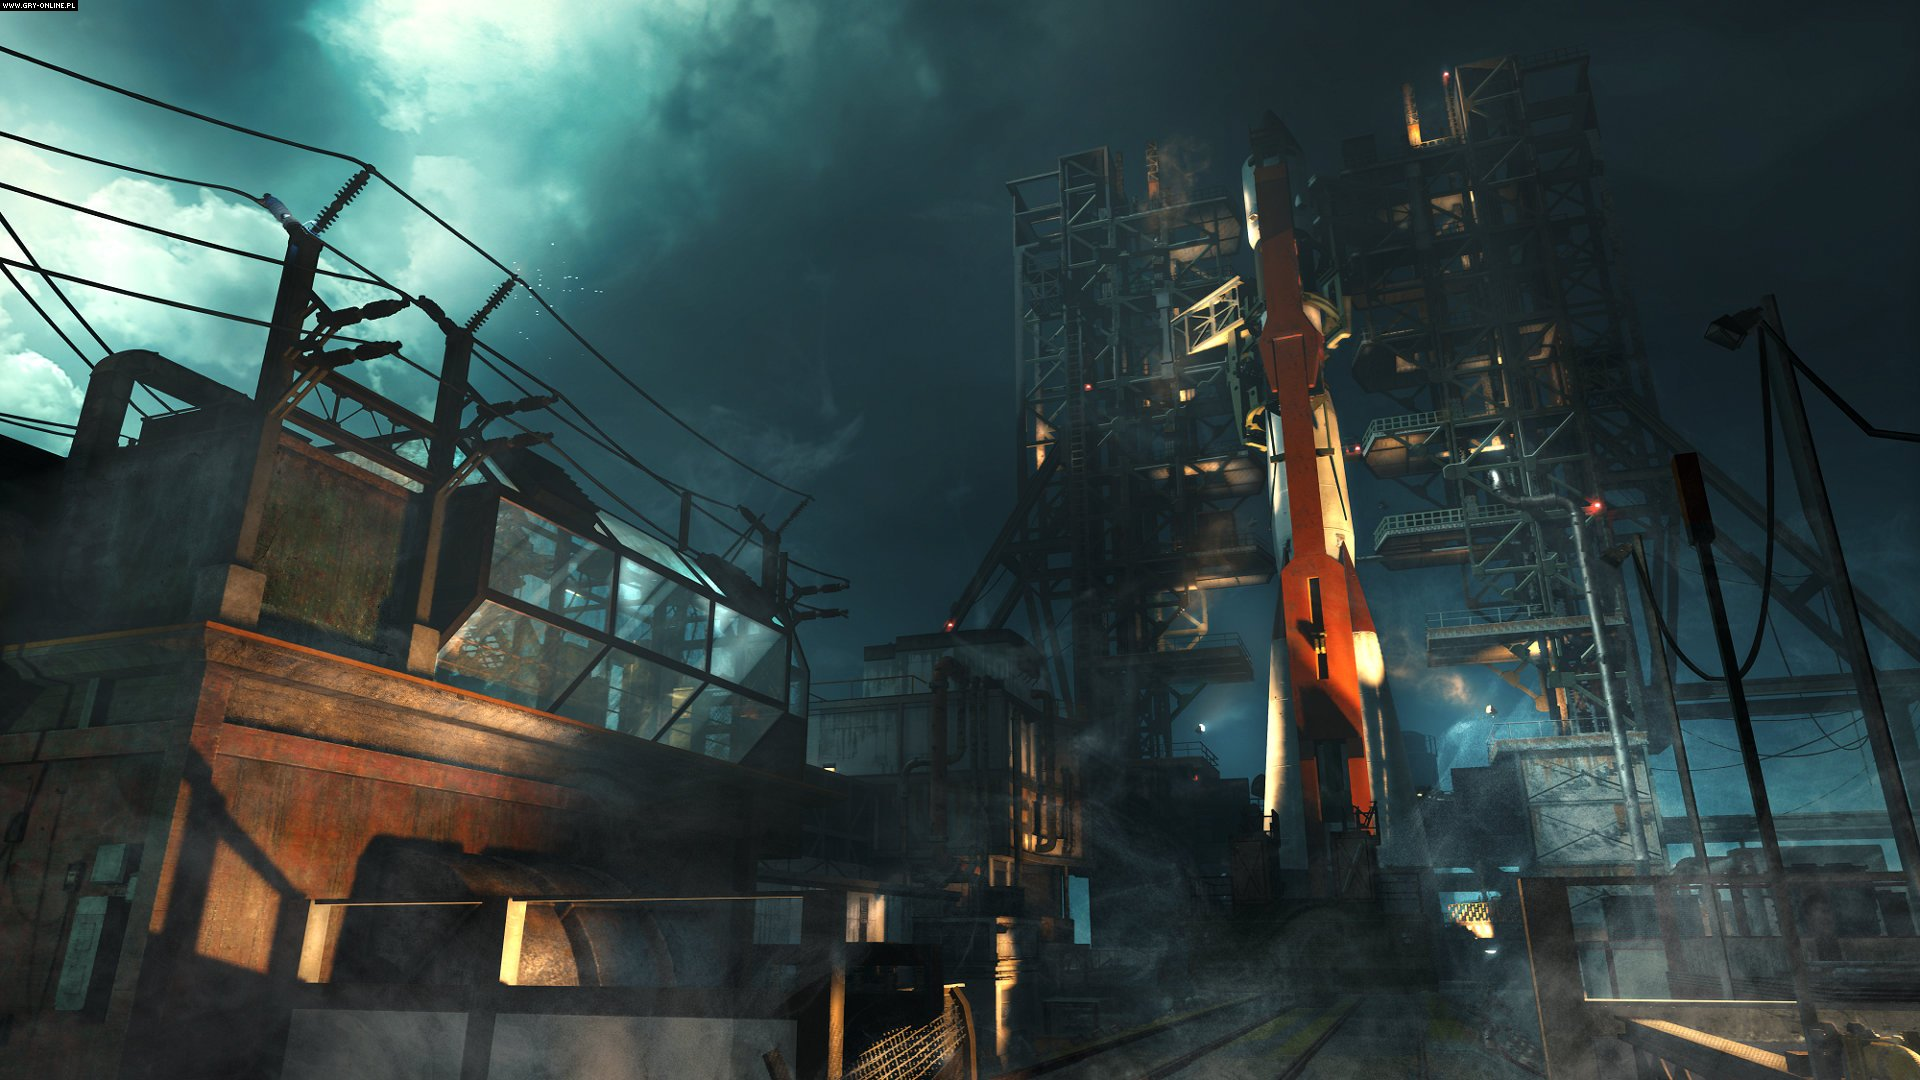 Call of Duty: Black Ops III - Zombies Chronicles PC, XONE, PS4 Games Image 8/8, Treyarch, Activision Blizzard